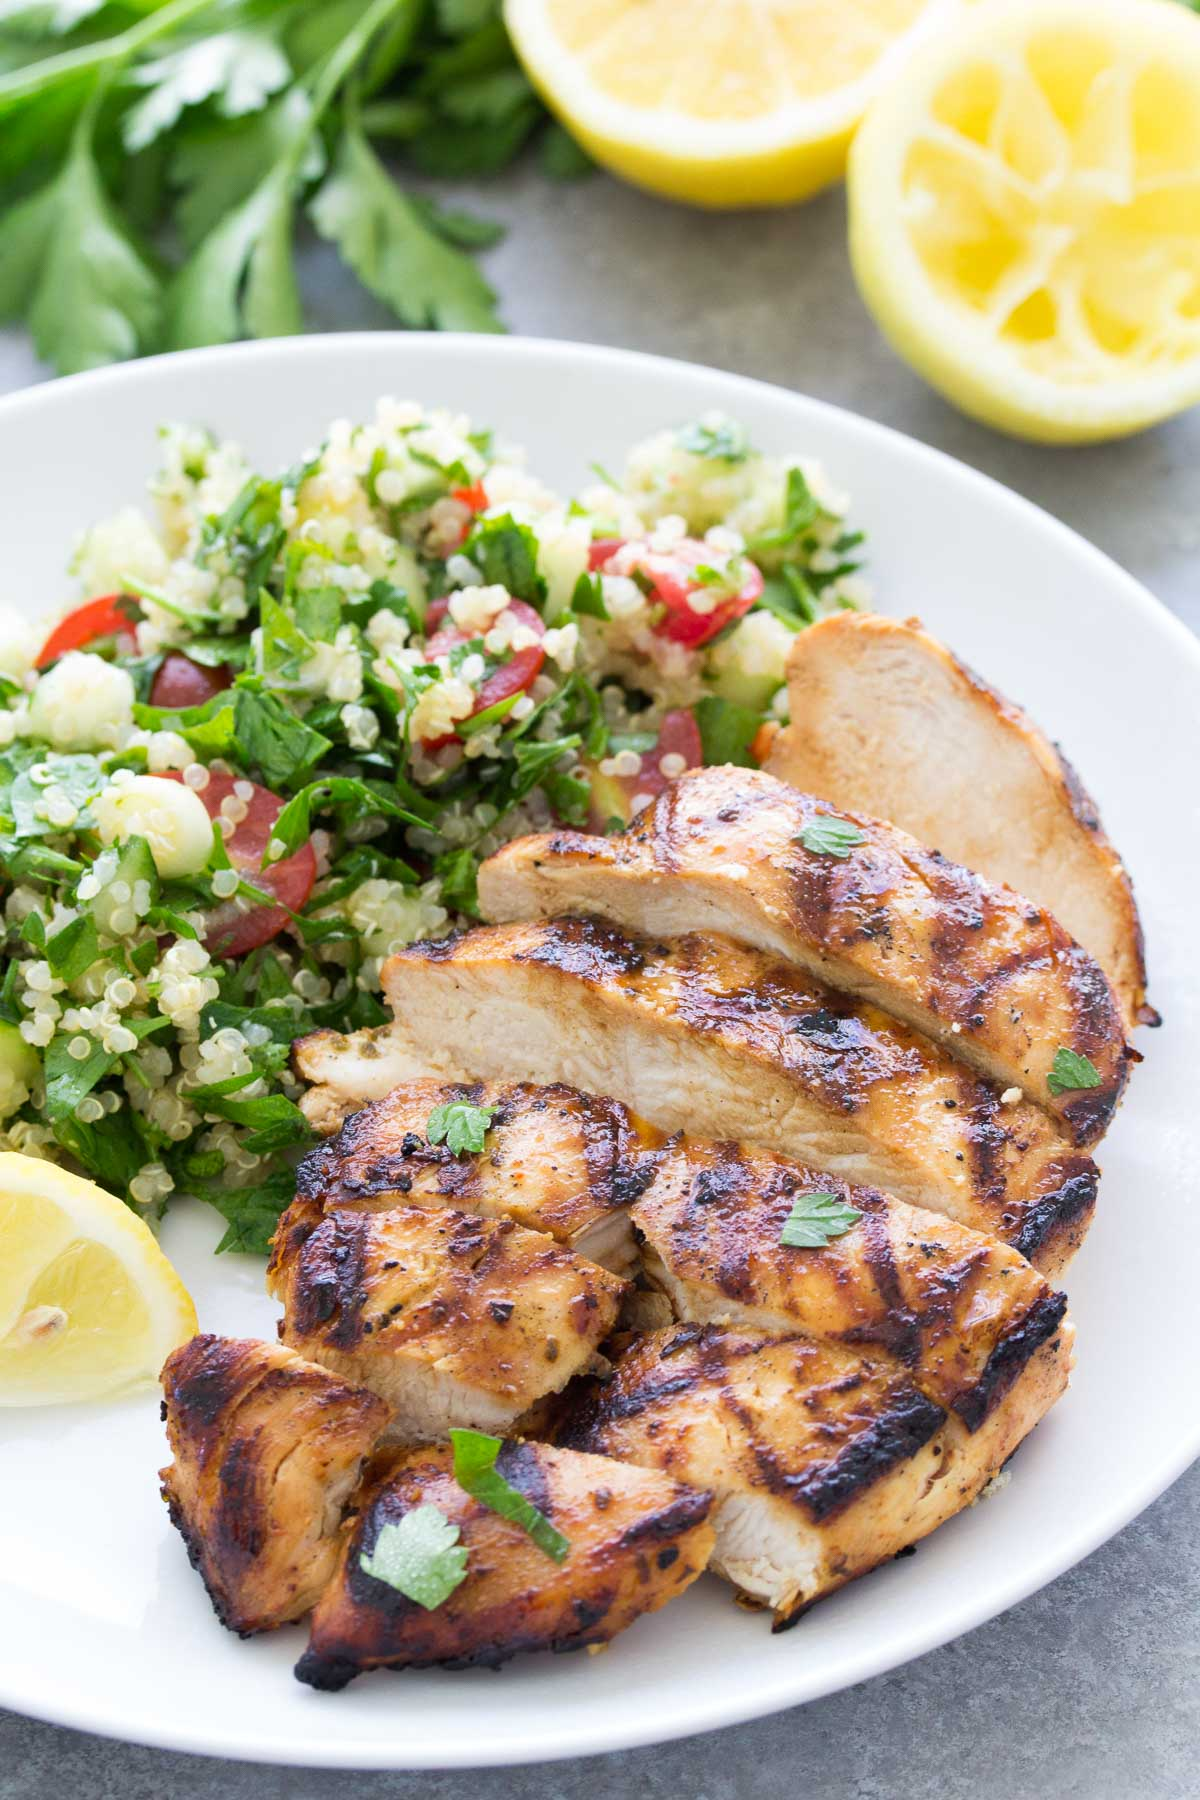 sliced grilled chicken served with salad